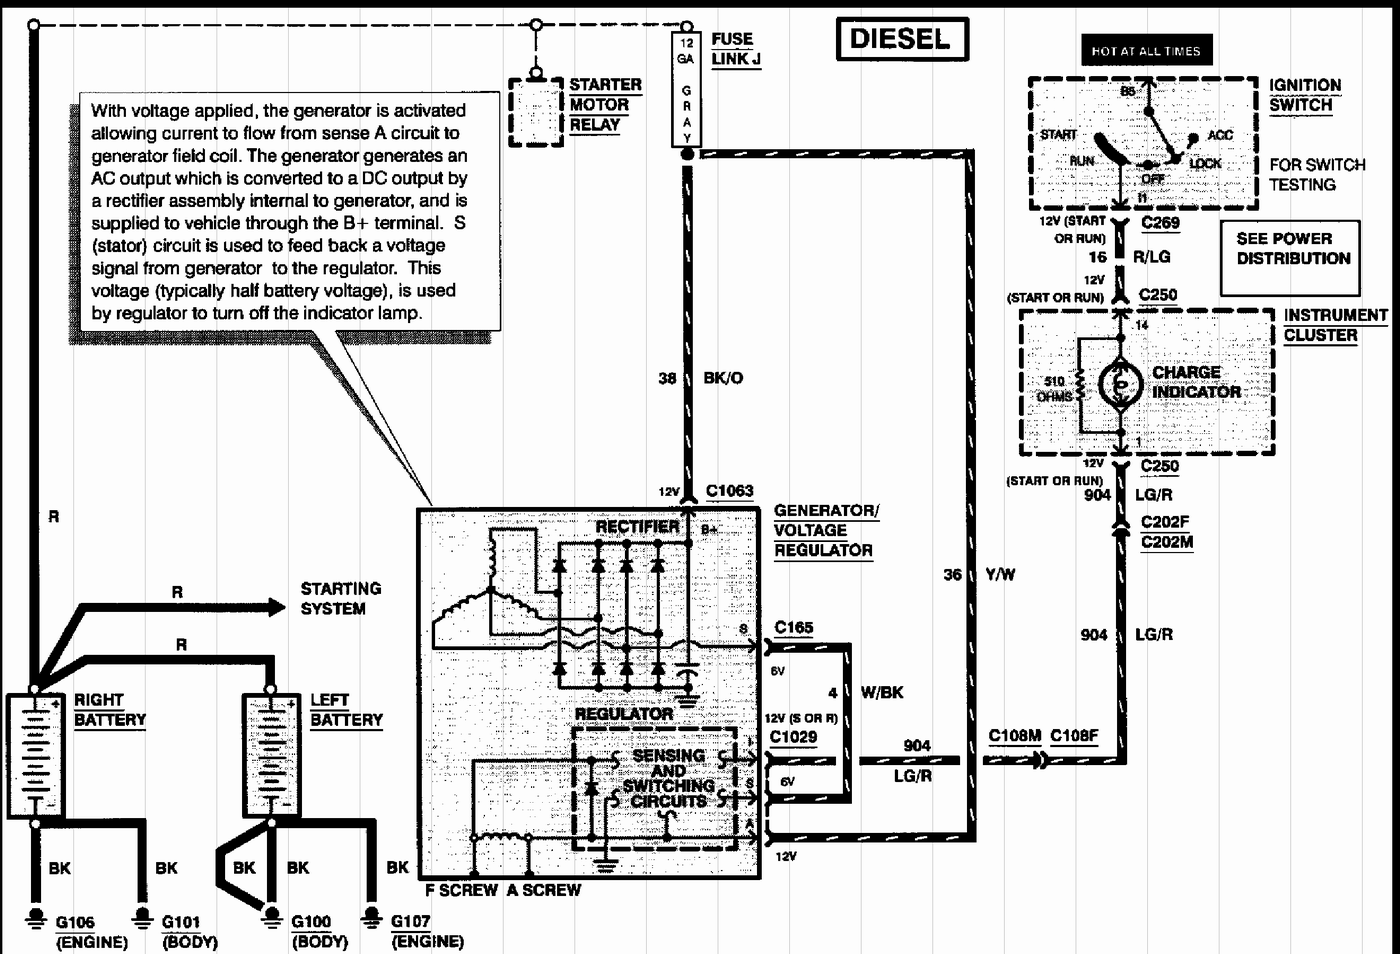 I need a wiring diagram for a 97 F350 7.3 Powerstroke with .